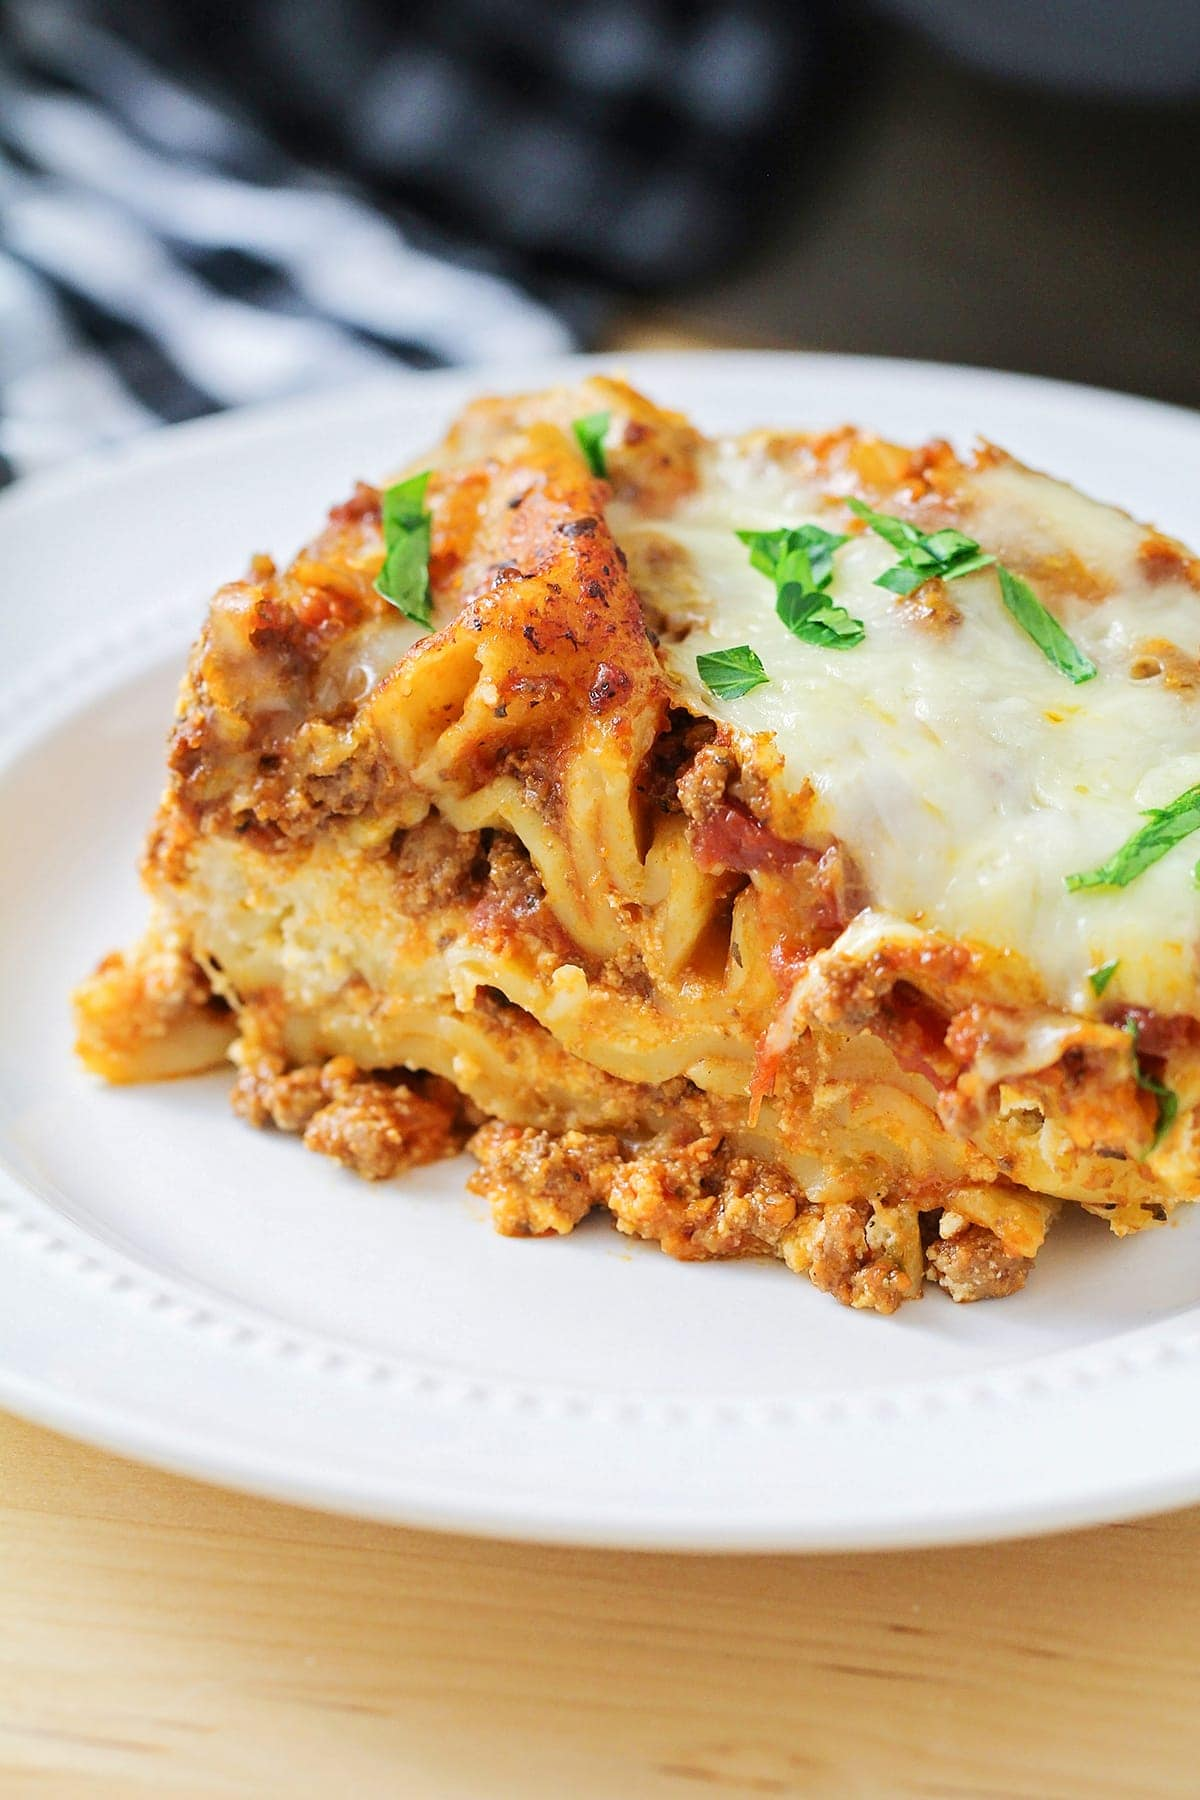 Slow Cooker Lasagna piece on plate